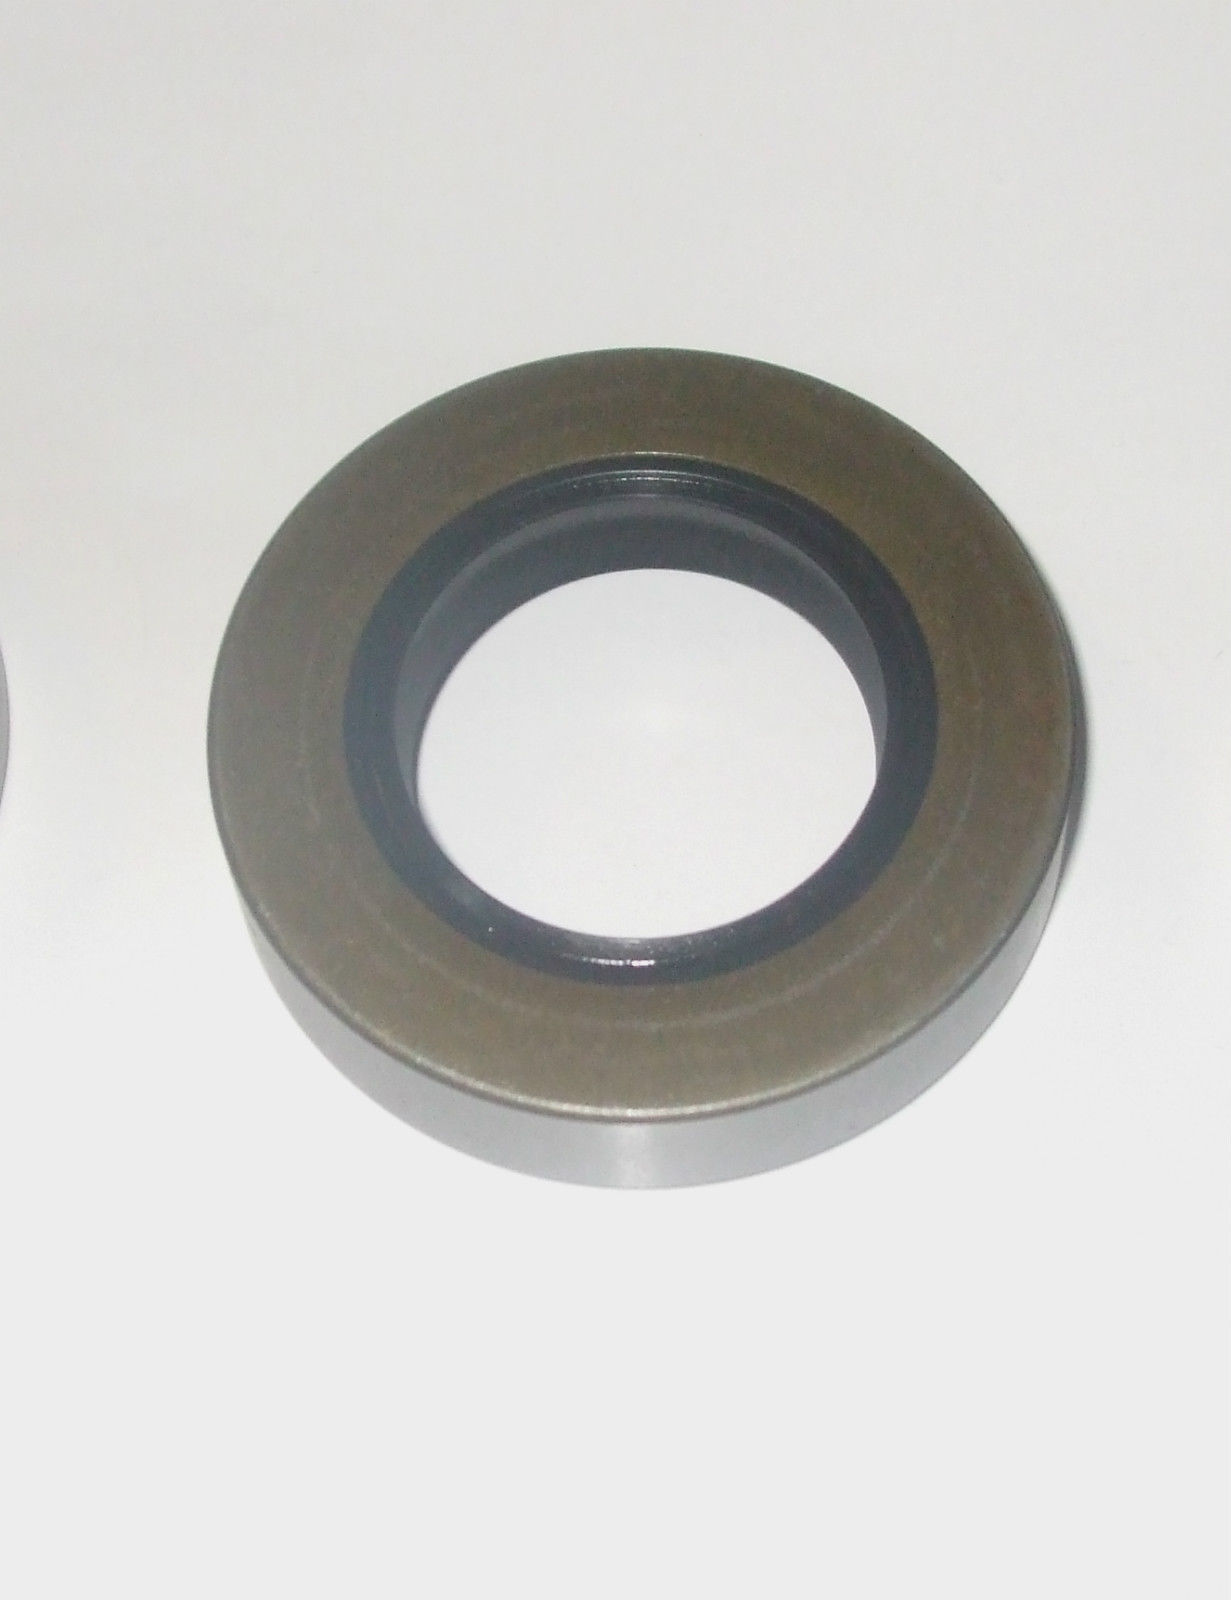 FRONT DIFFERENTIAL AXLE PINION OIL SEAL x1 (Triumph Dolomite Sprint 2.0) (1972- 80)